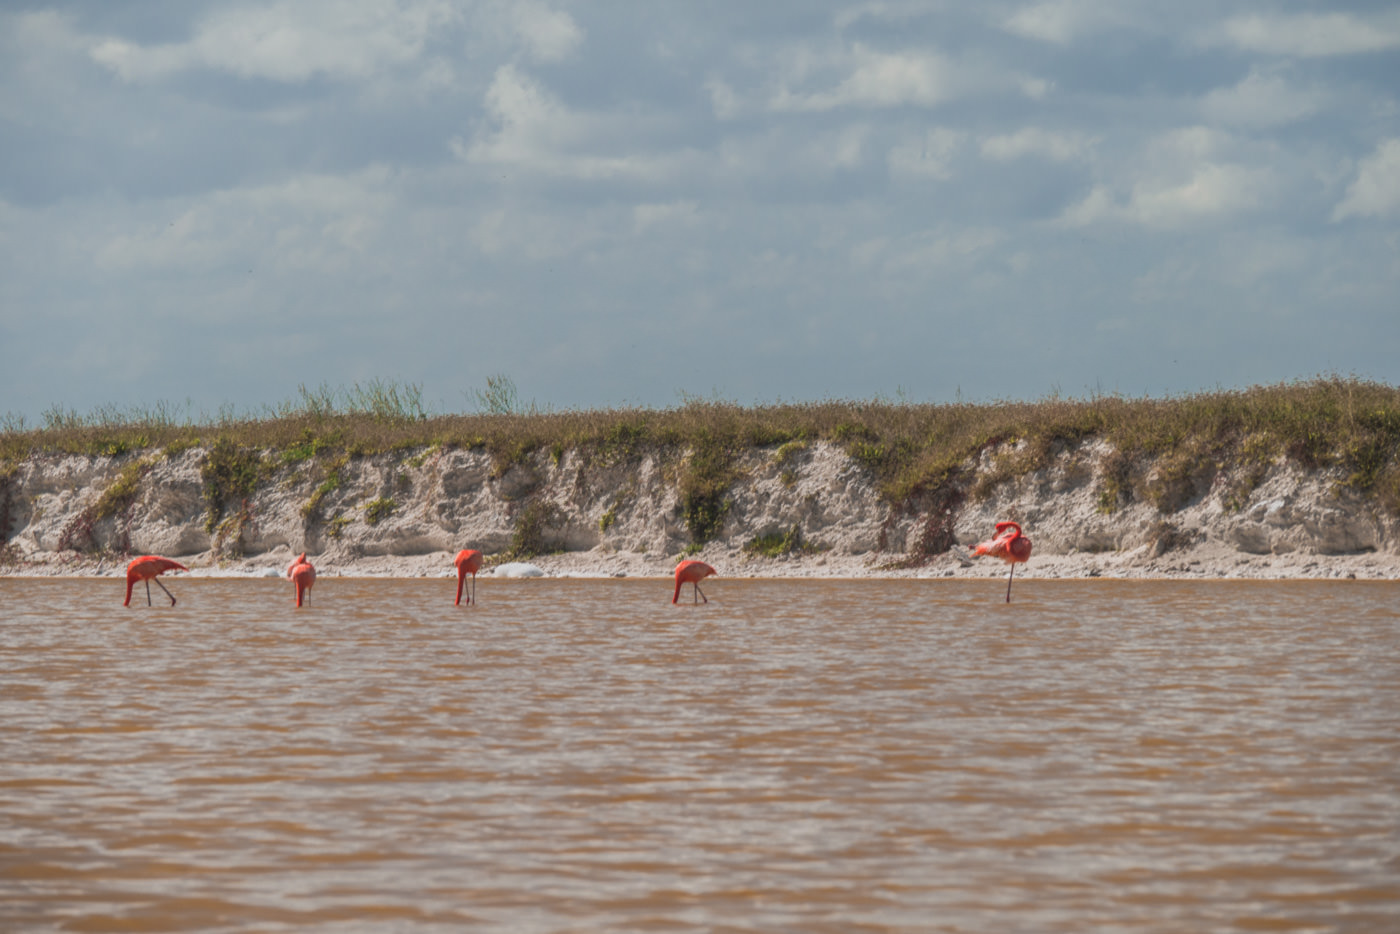 Flamingos in Las Coloradas in Mexiko